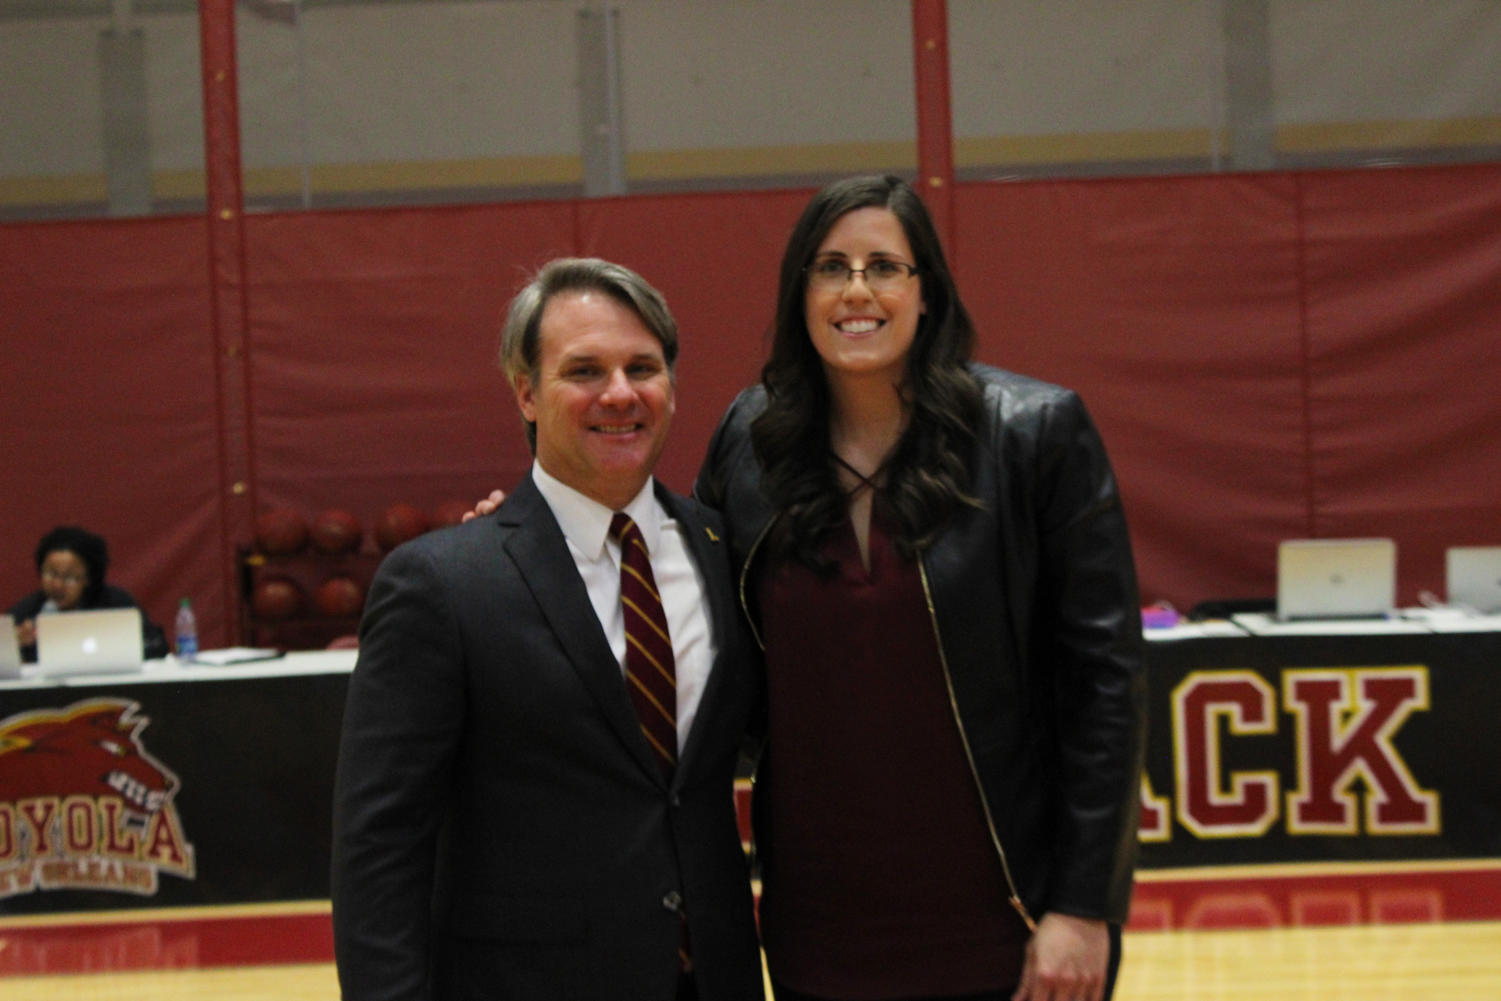 Athletic+Director+Brett+Simpson%28Left%29+and+new+Hall+of+Fame+Inductee+Gina+Gill+A%2711%28Right%29+celebrate+induction+honors.+Photo+credit%3A+Rosha%27E+Gibson